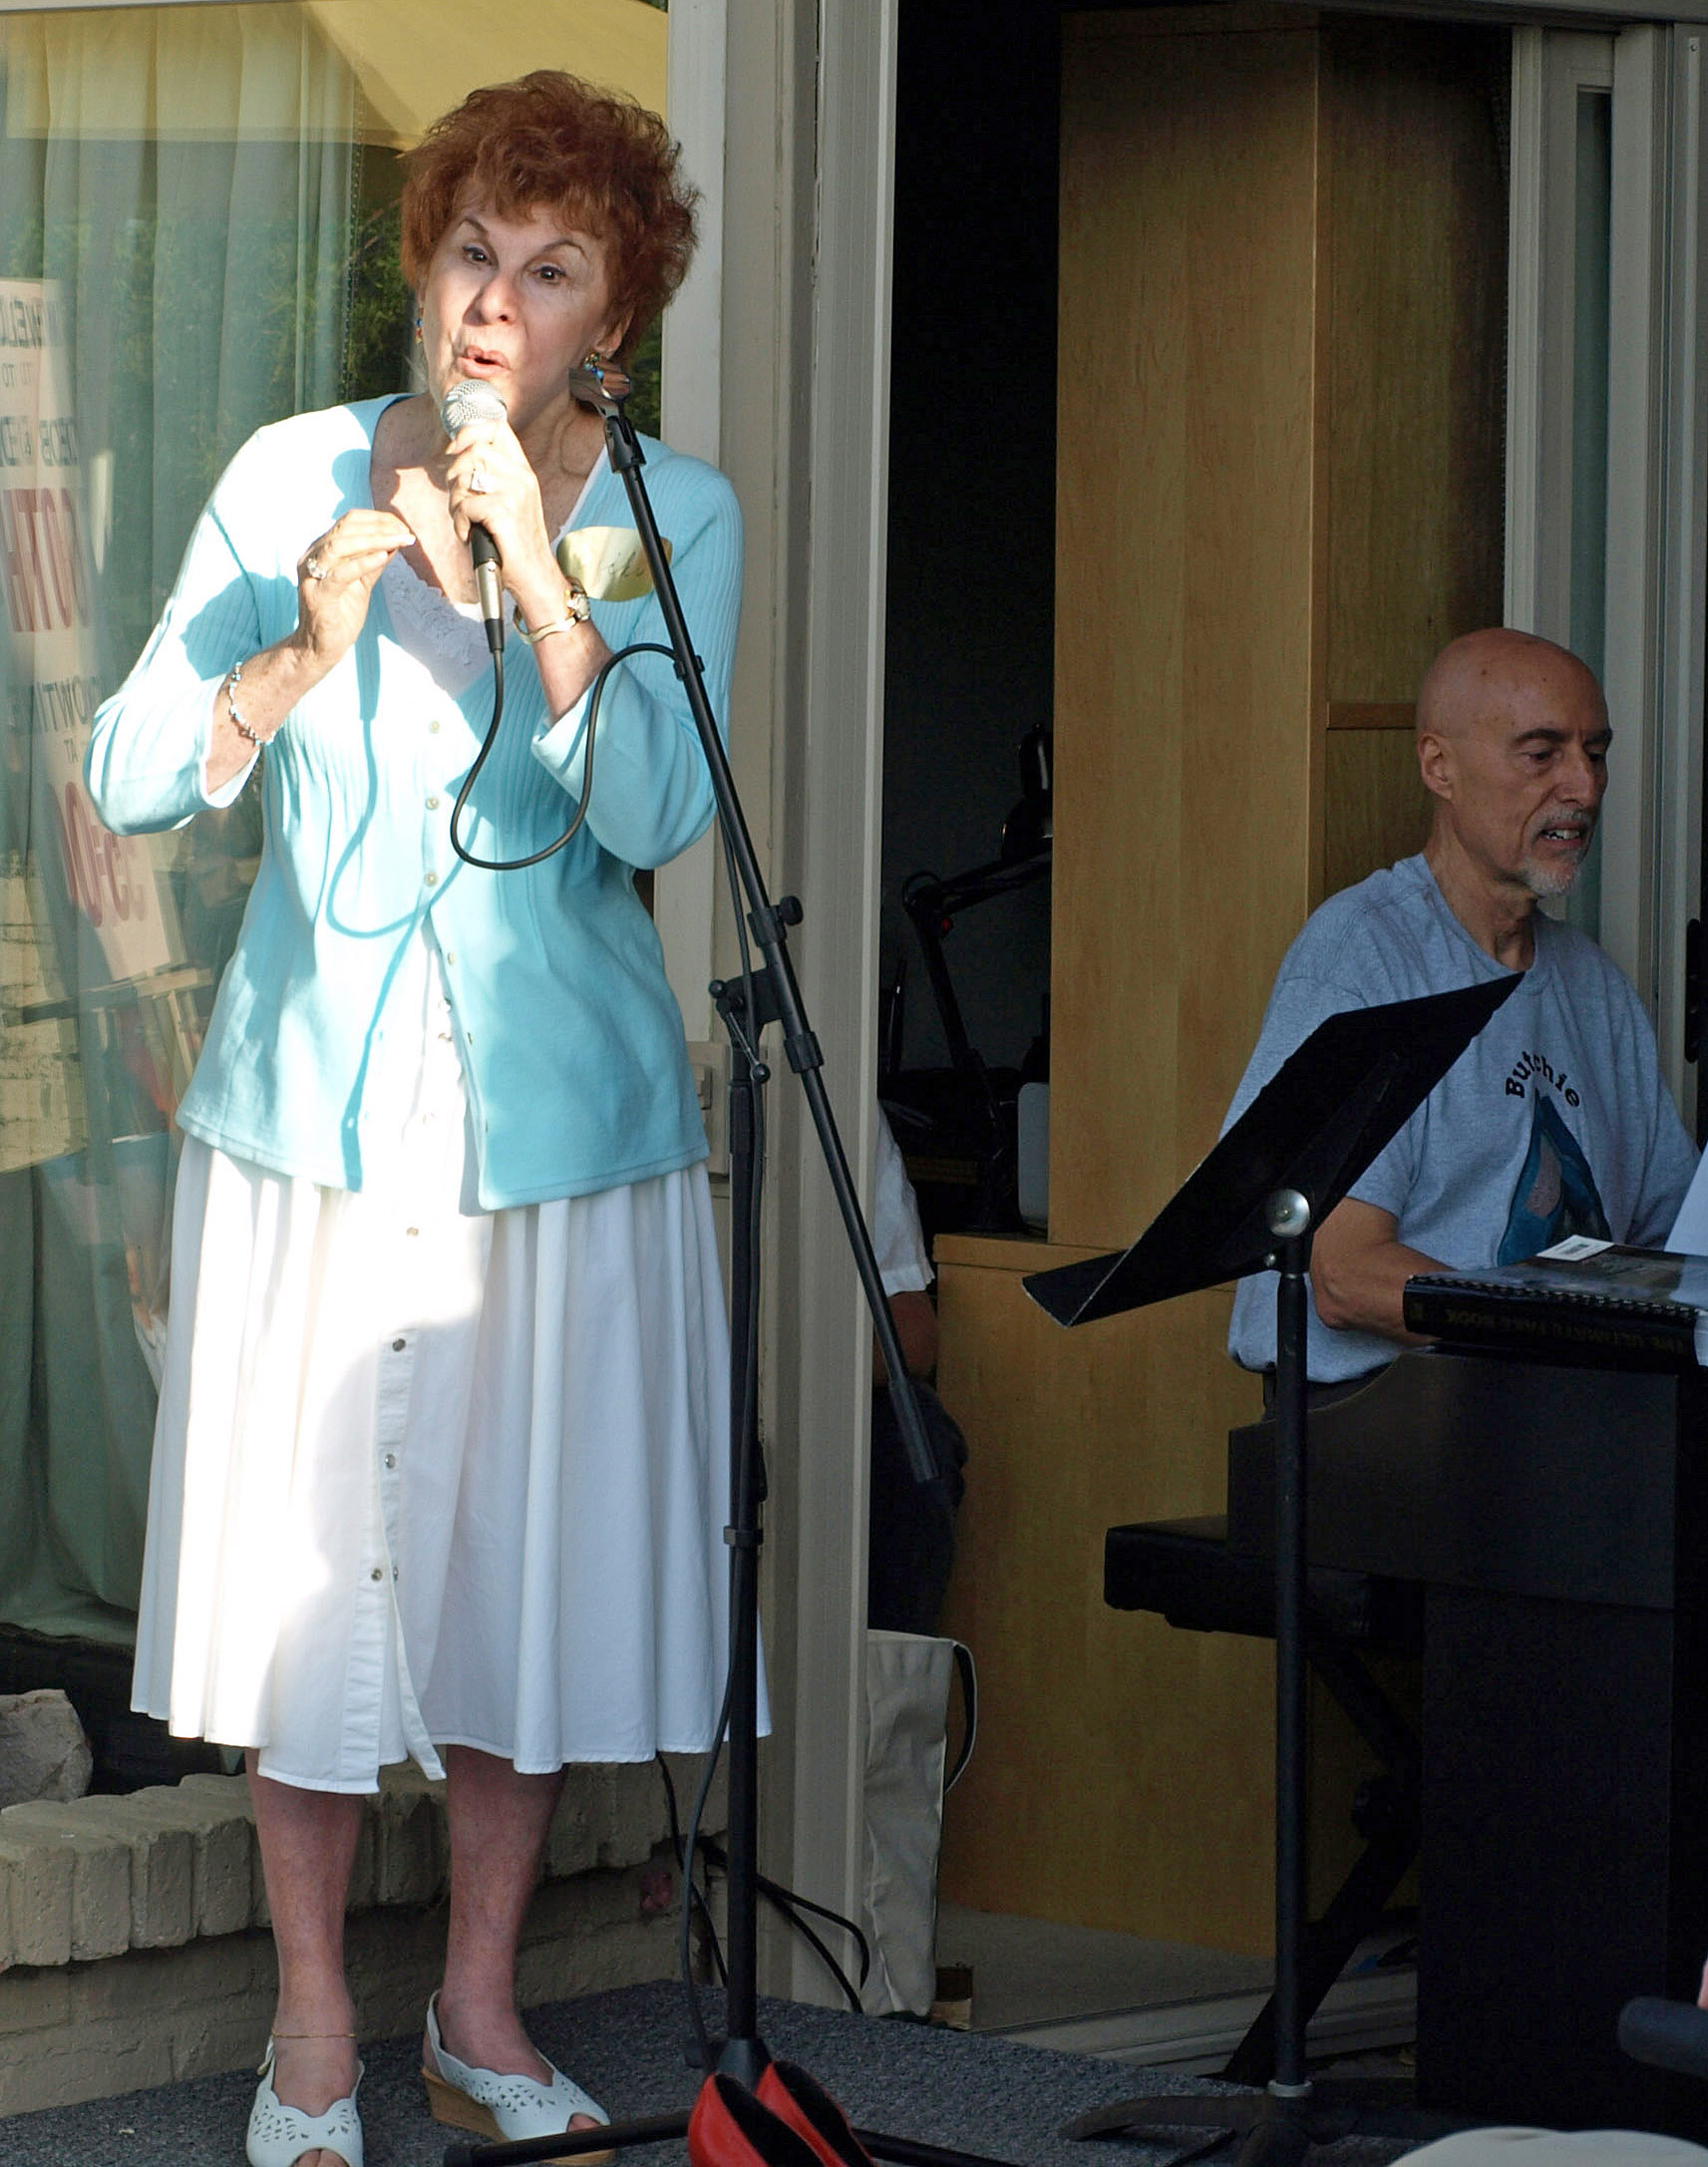 Vicki singing at the party, 2009